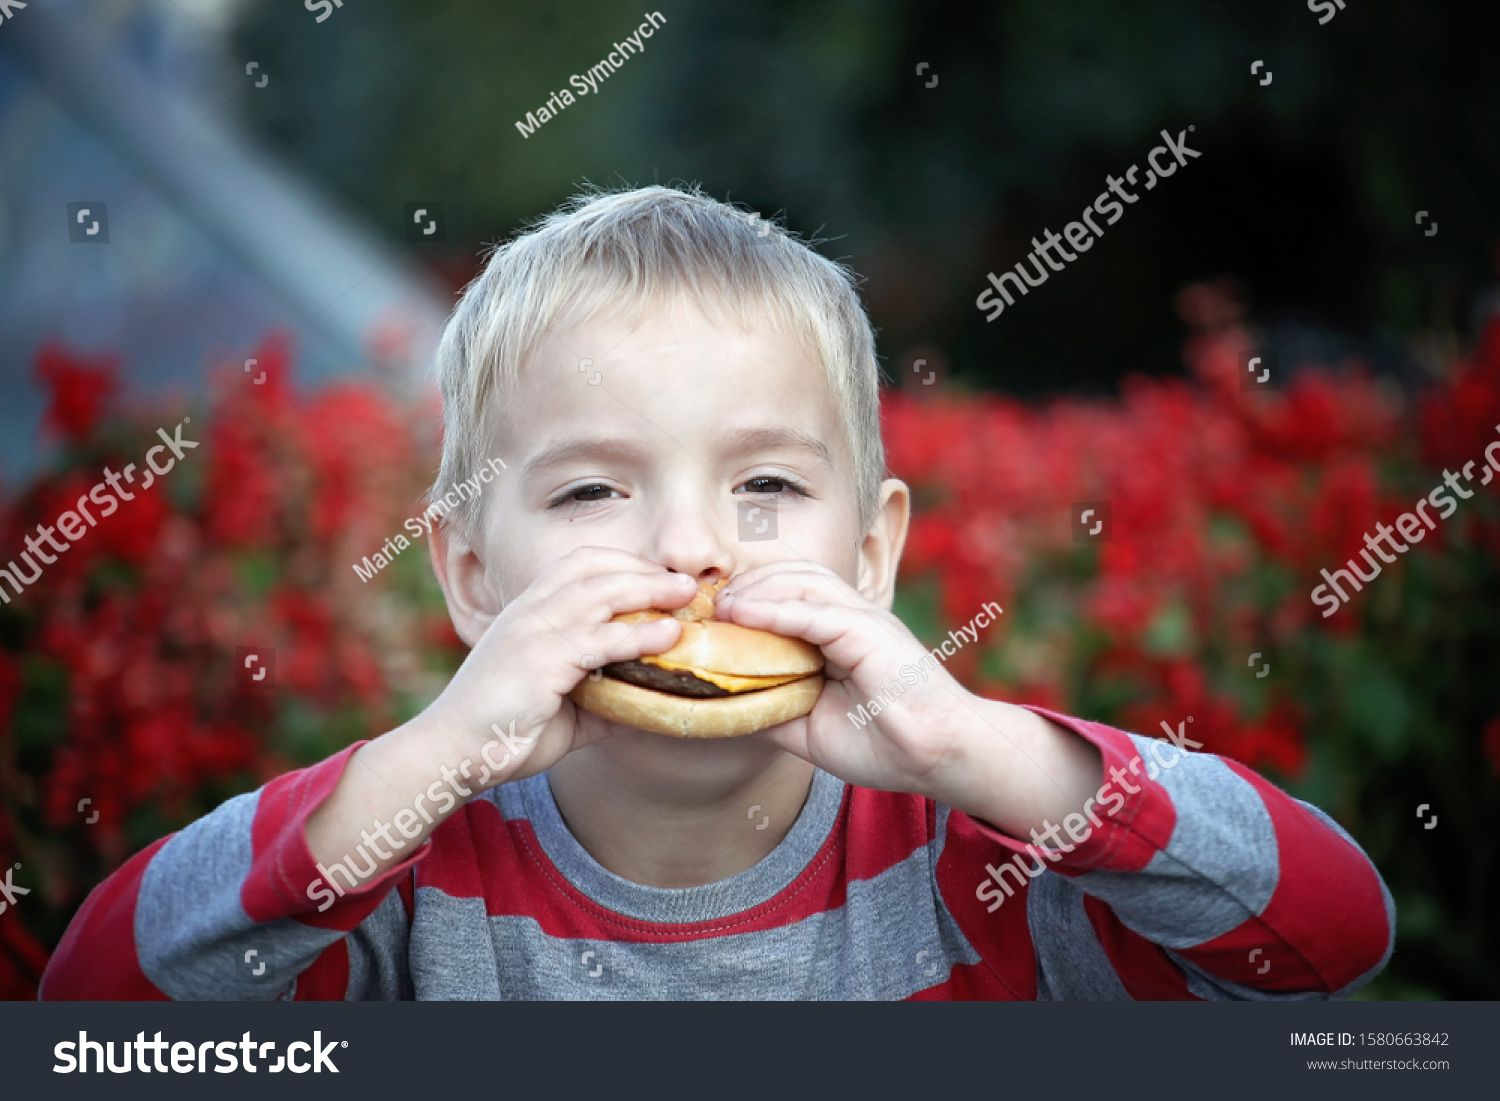 Funny Hungry Small Boy Eating A Burger At The Street In Summer Food And Drink Concept Healthy Childhood Outdoor Emotional Lifes Hungry Funny Small Boy Funny